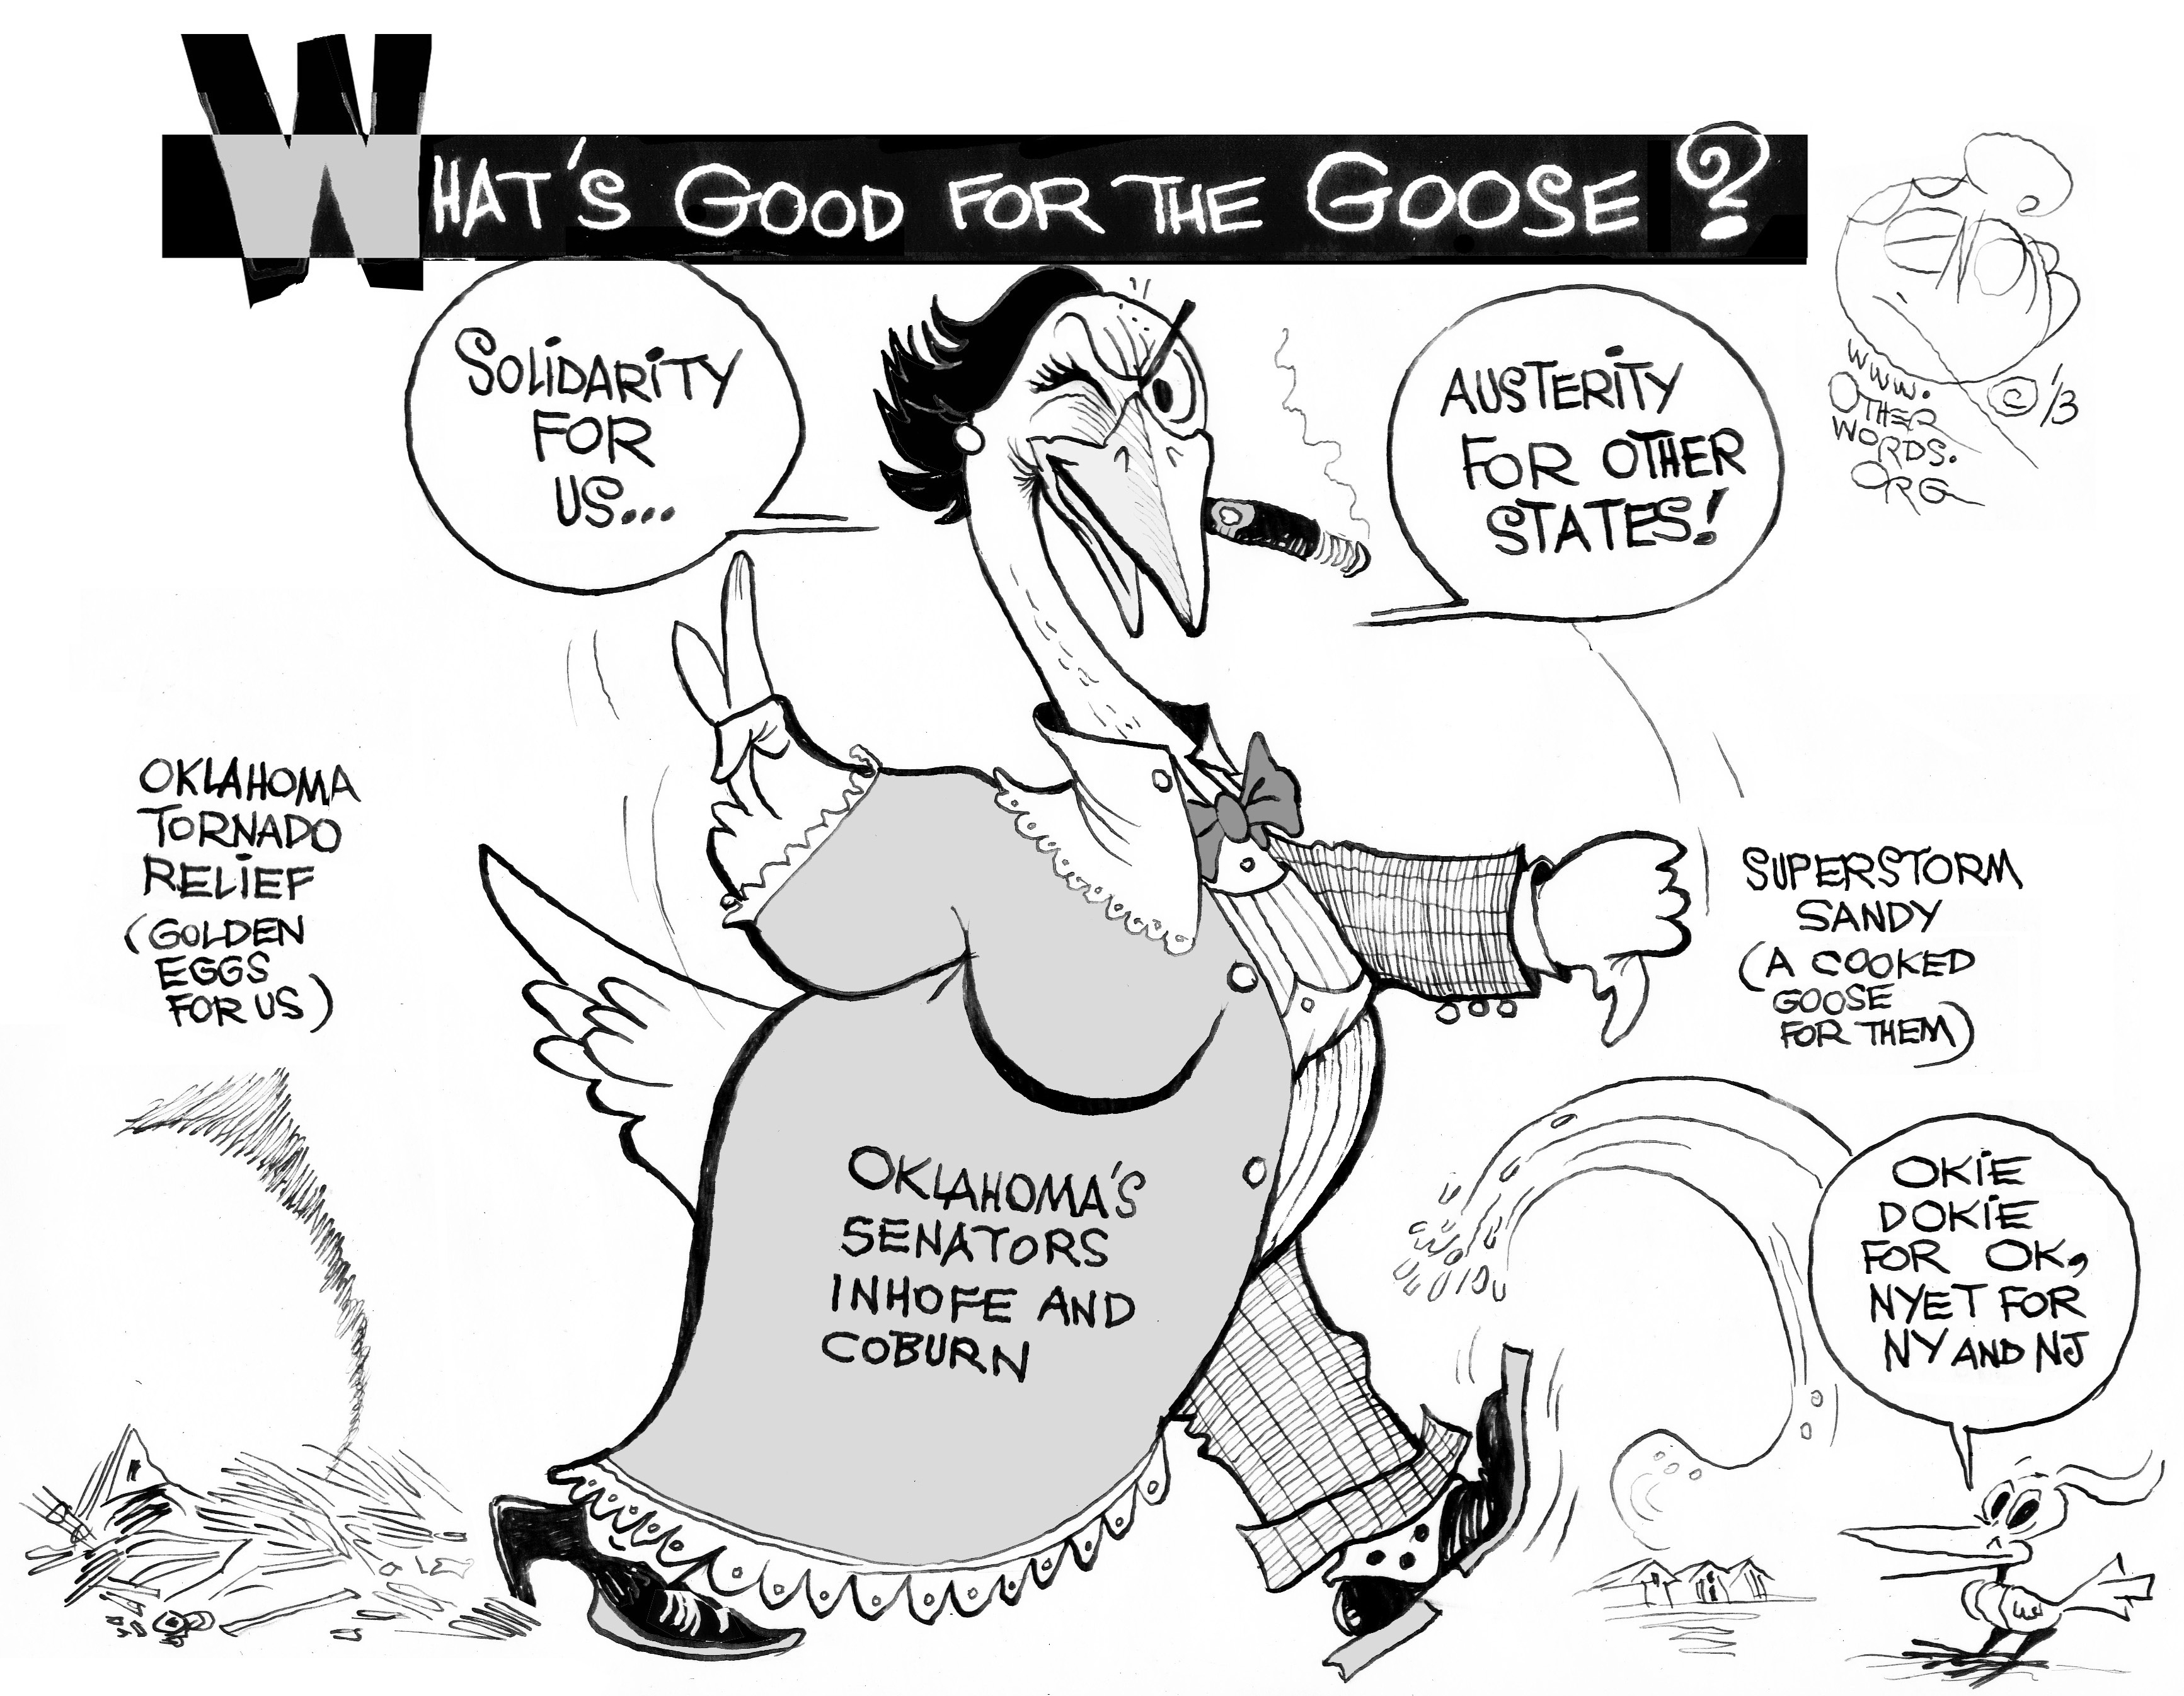 Oklahoma's Silly Goose